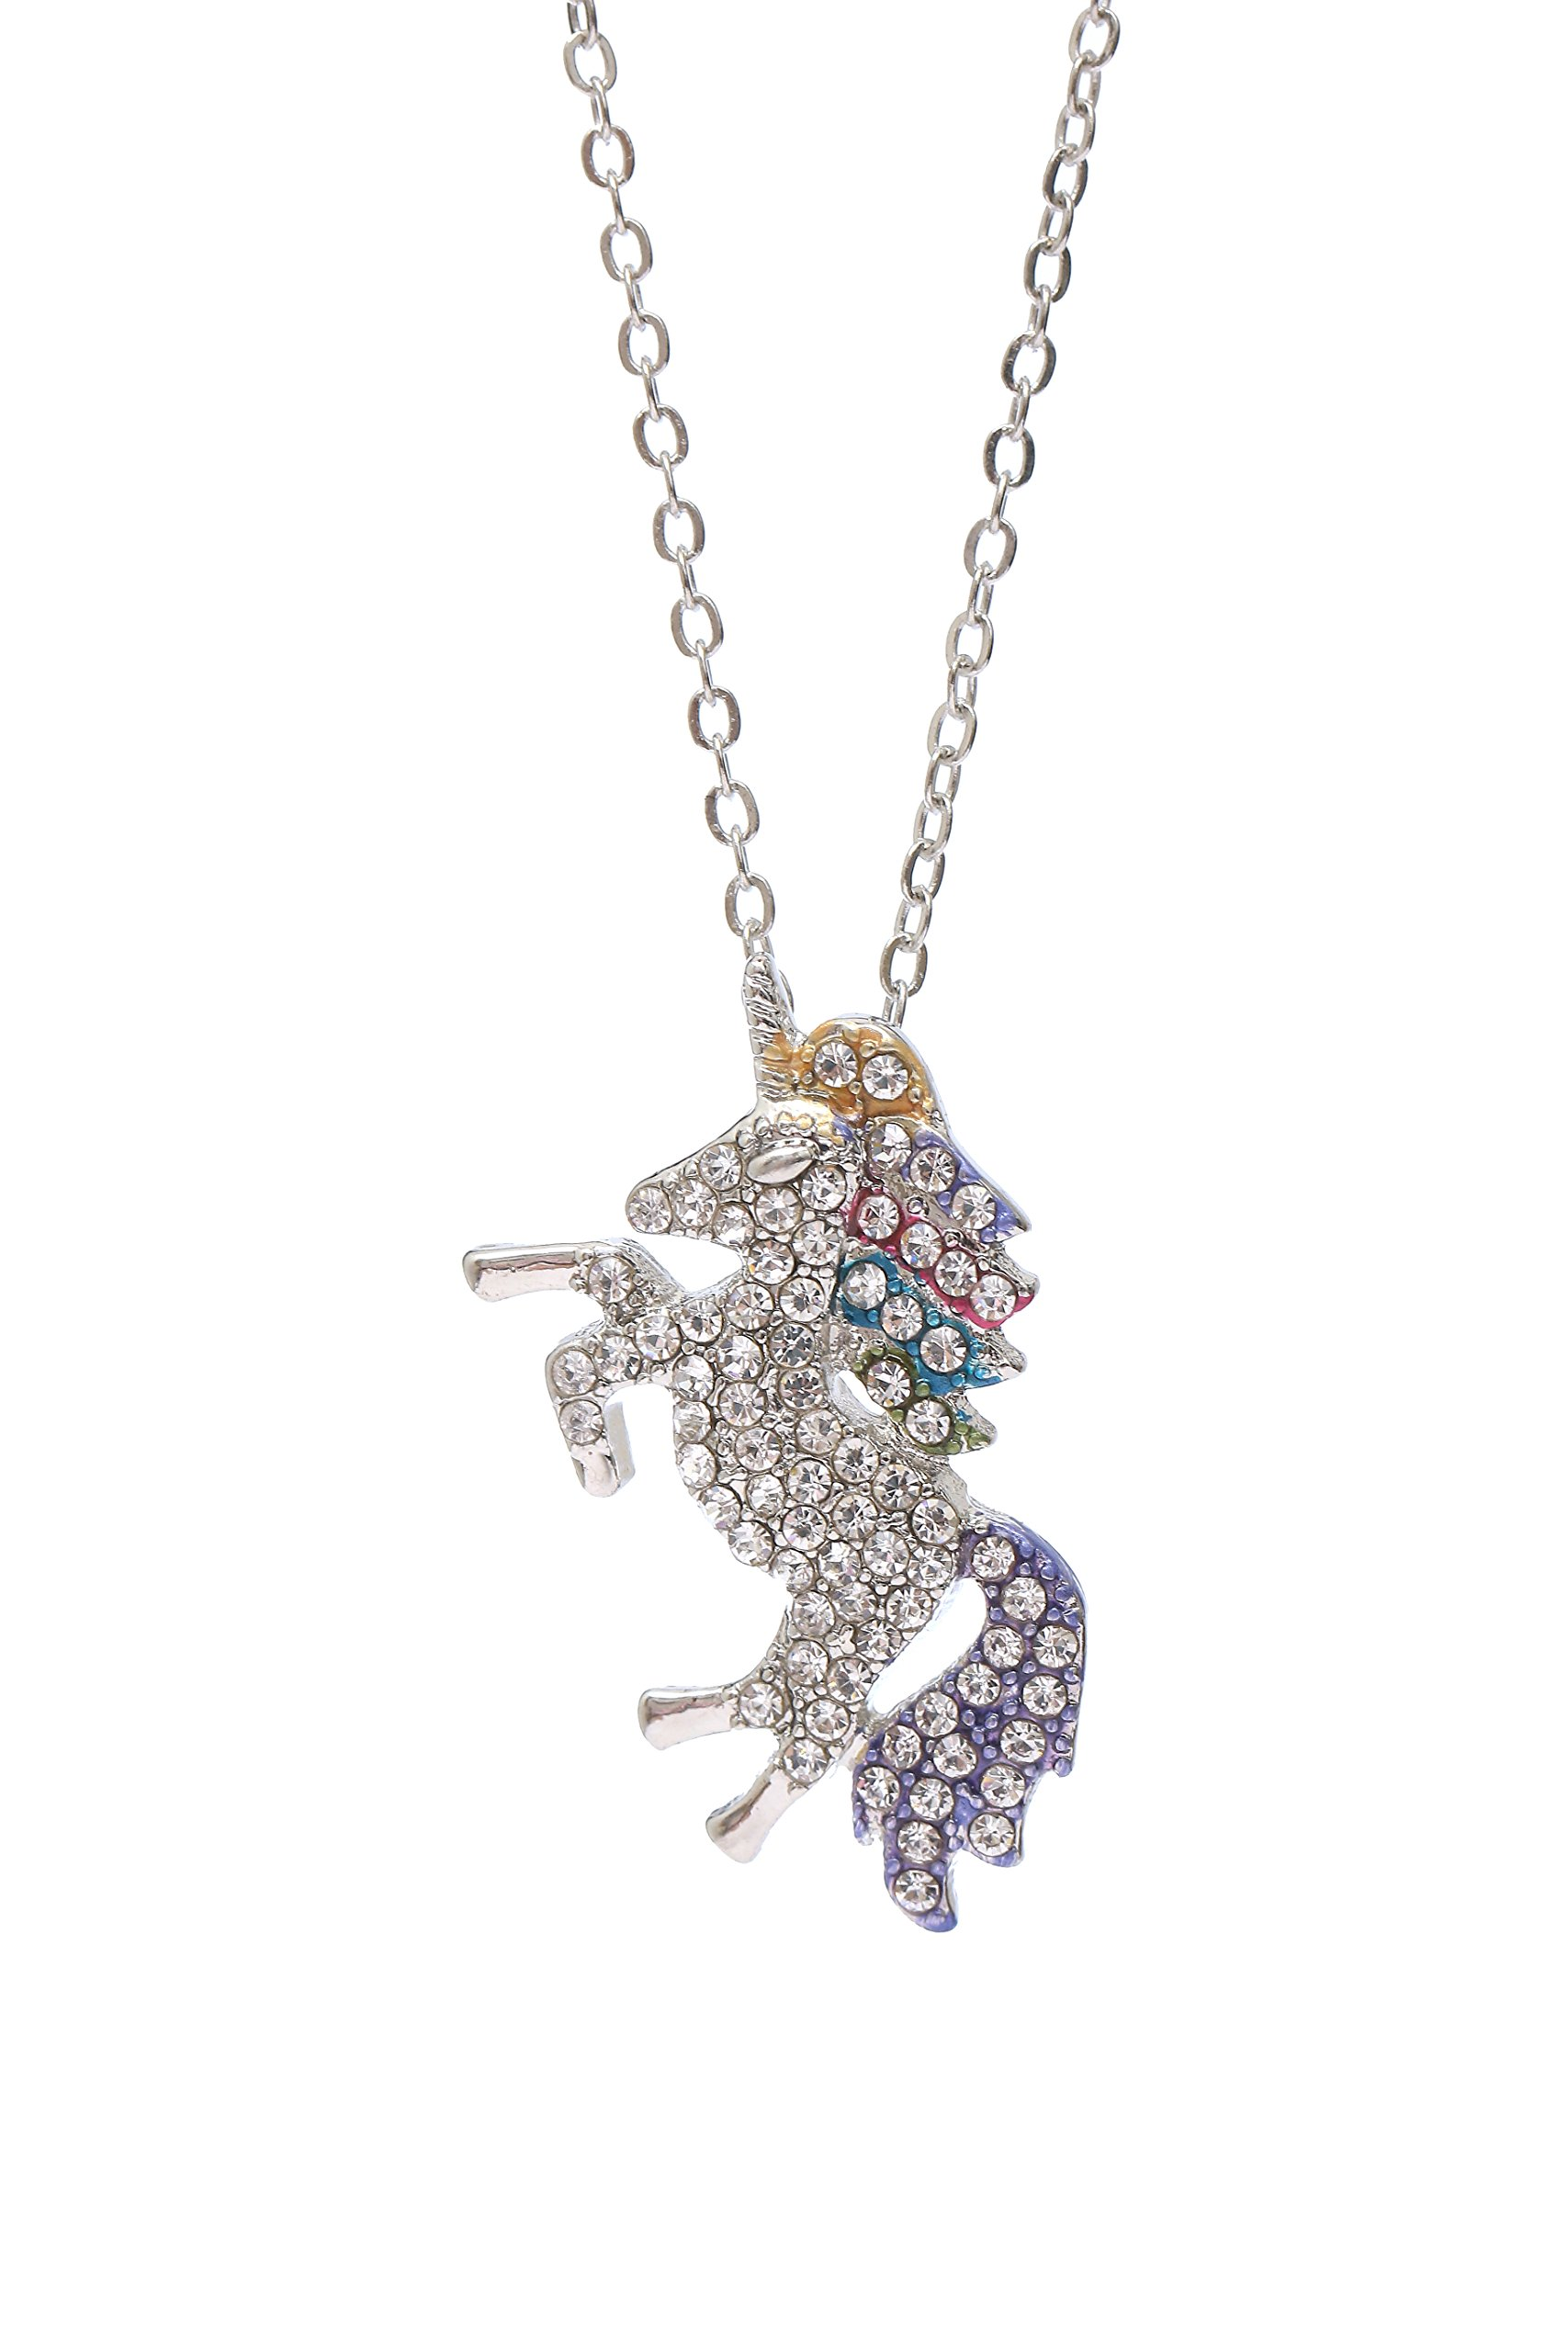 MUHU Fashion Rainbow Rhinestones Unicorn Pendant Necklace 3